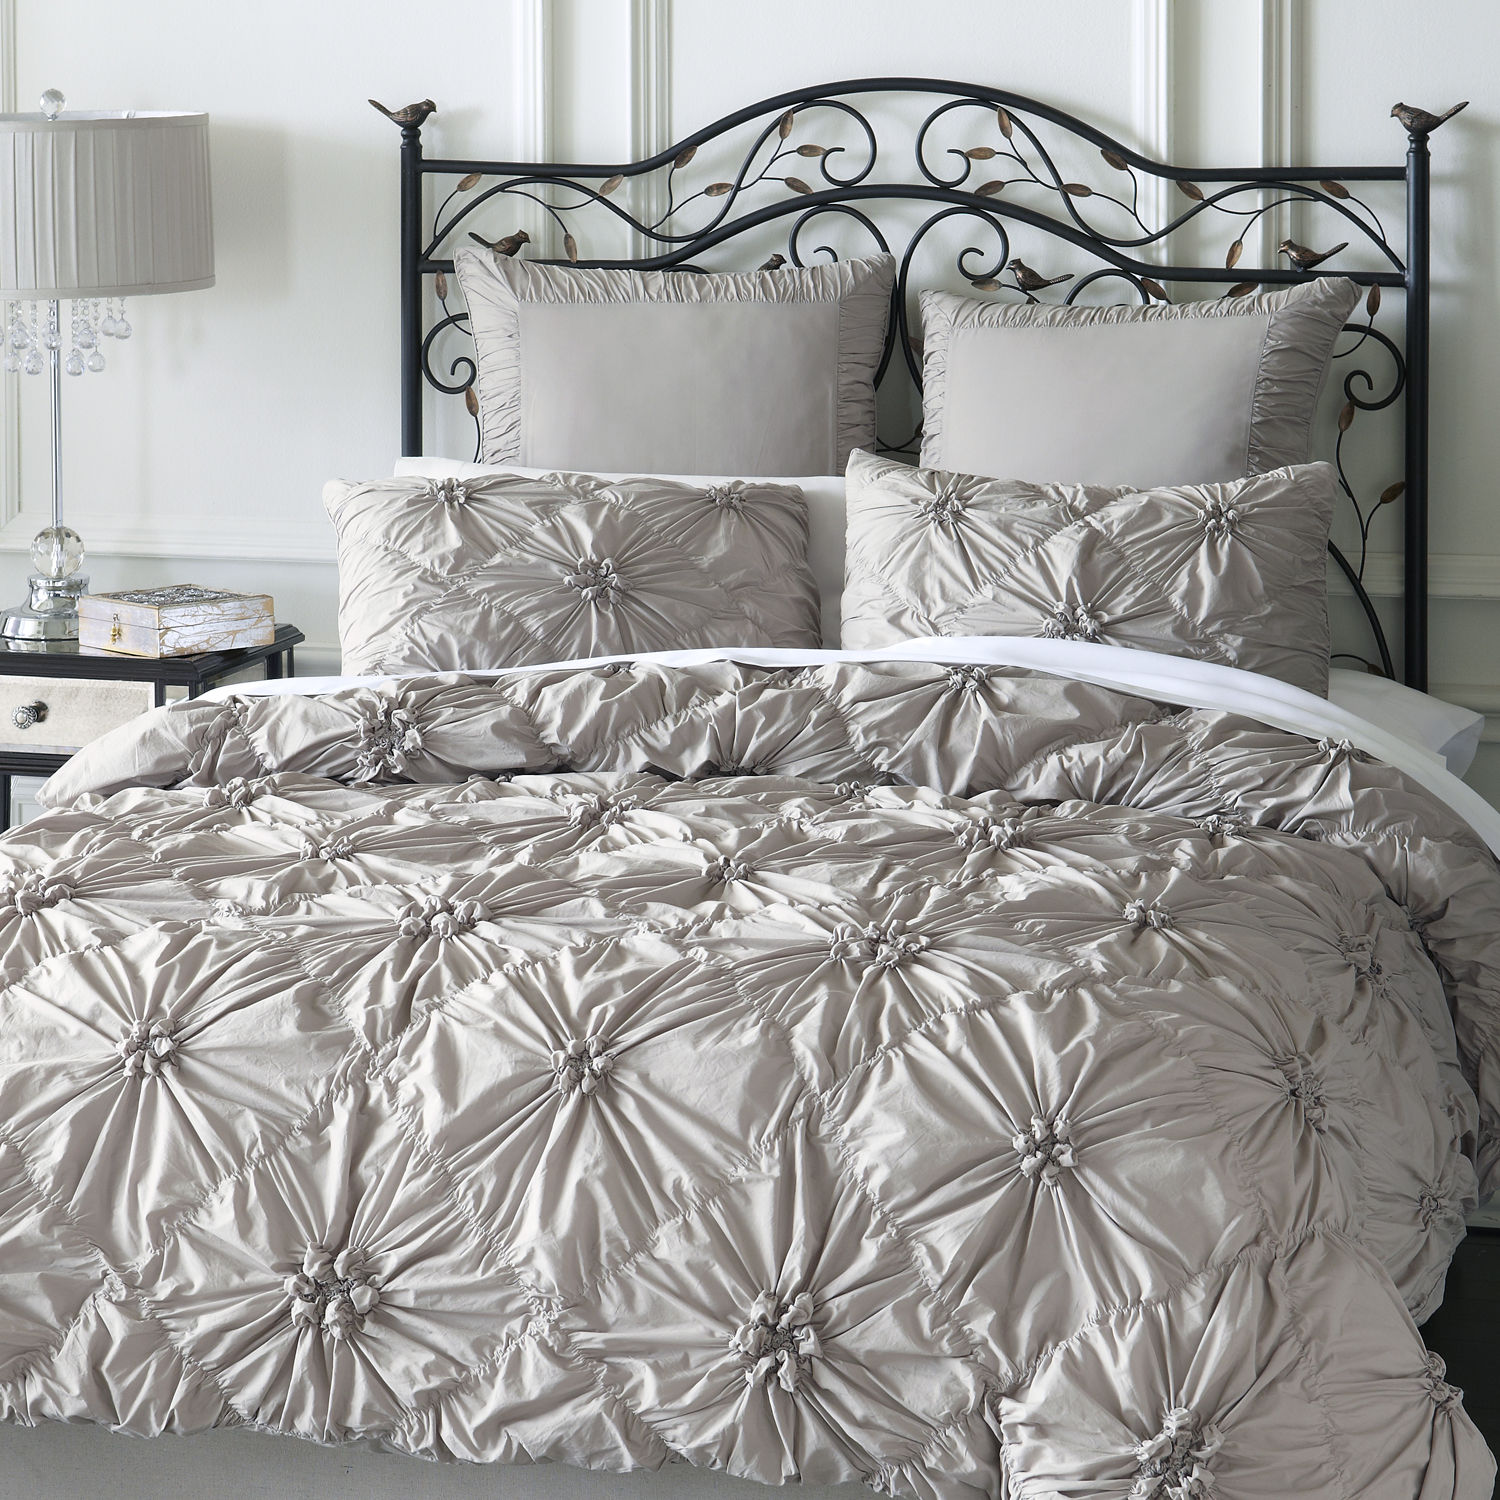 Nordstrom Bedding | Queen Duvet Covers | Duvet Covers Queen Target